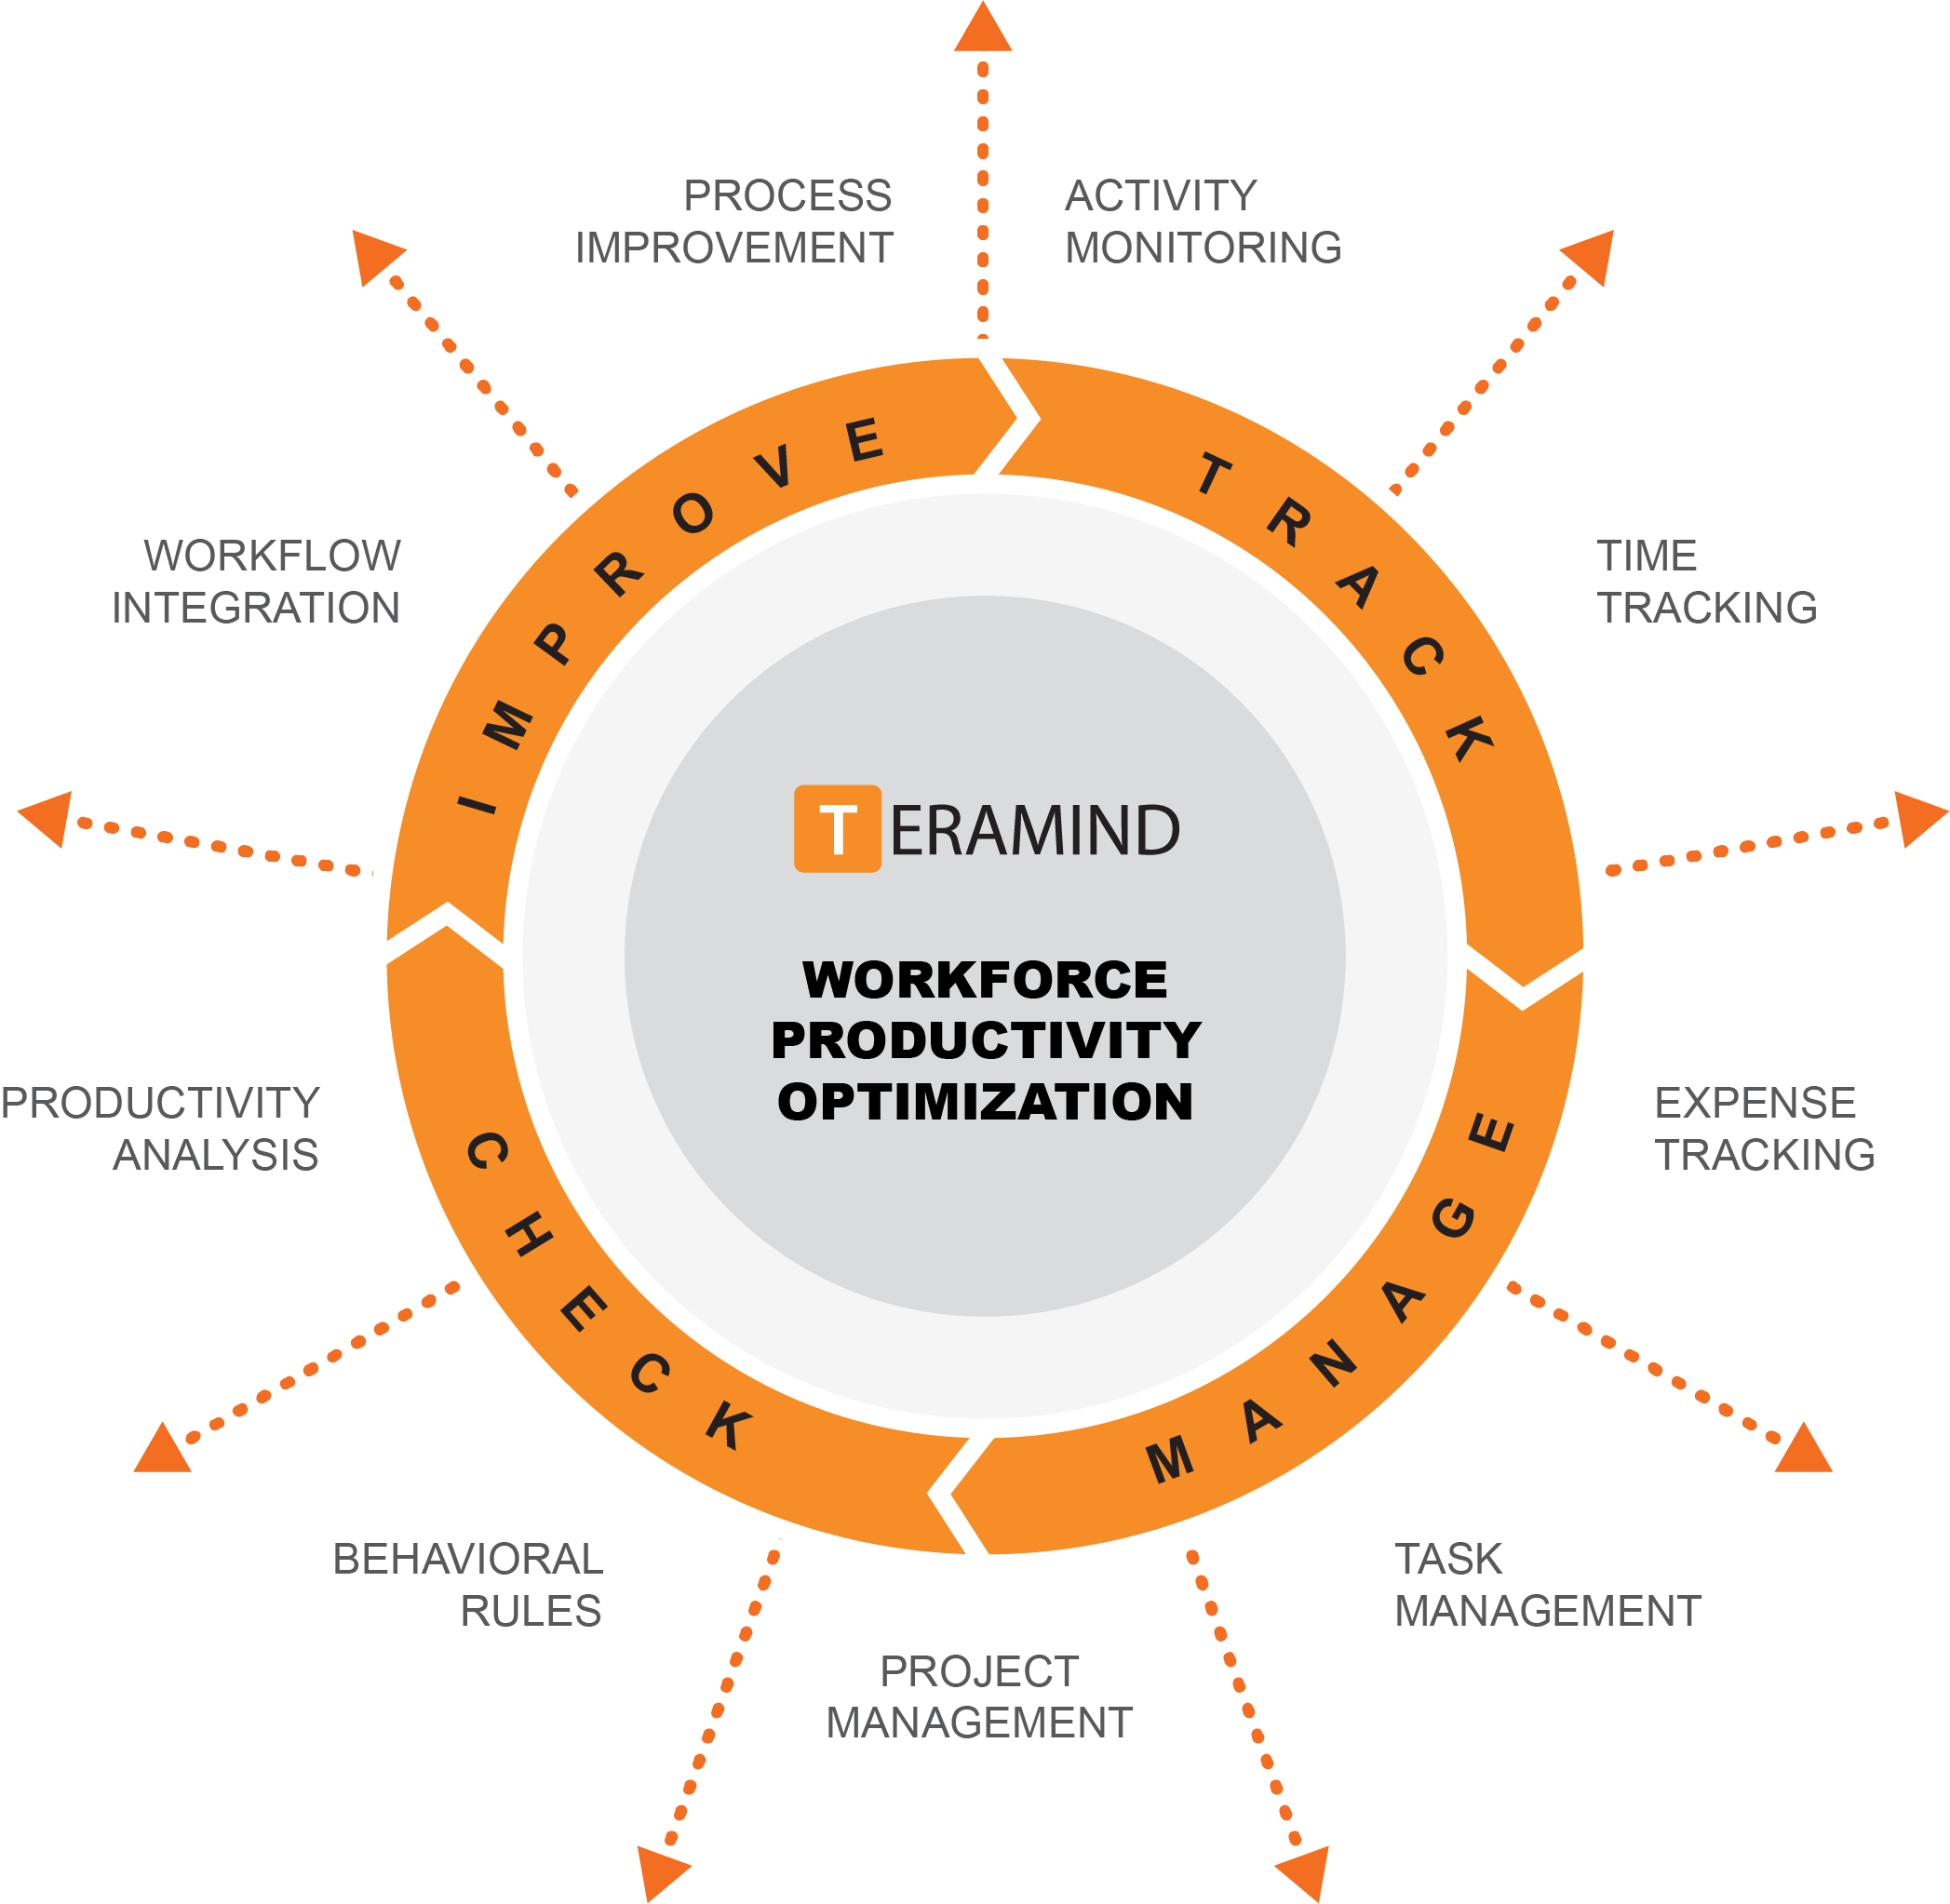 Teramind workforce productivity optimization value diagram